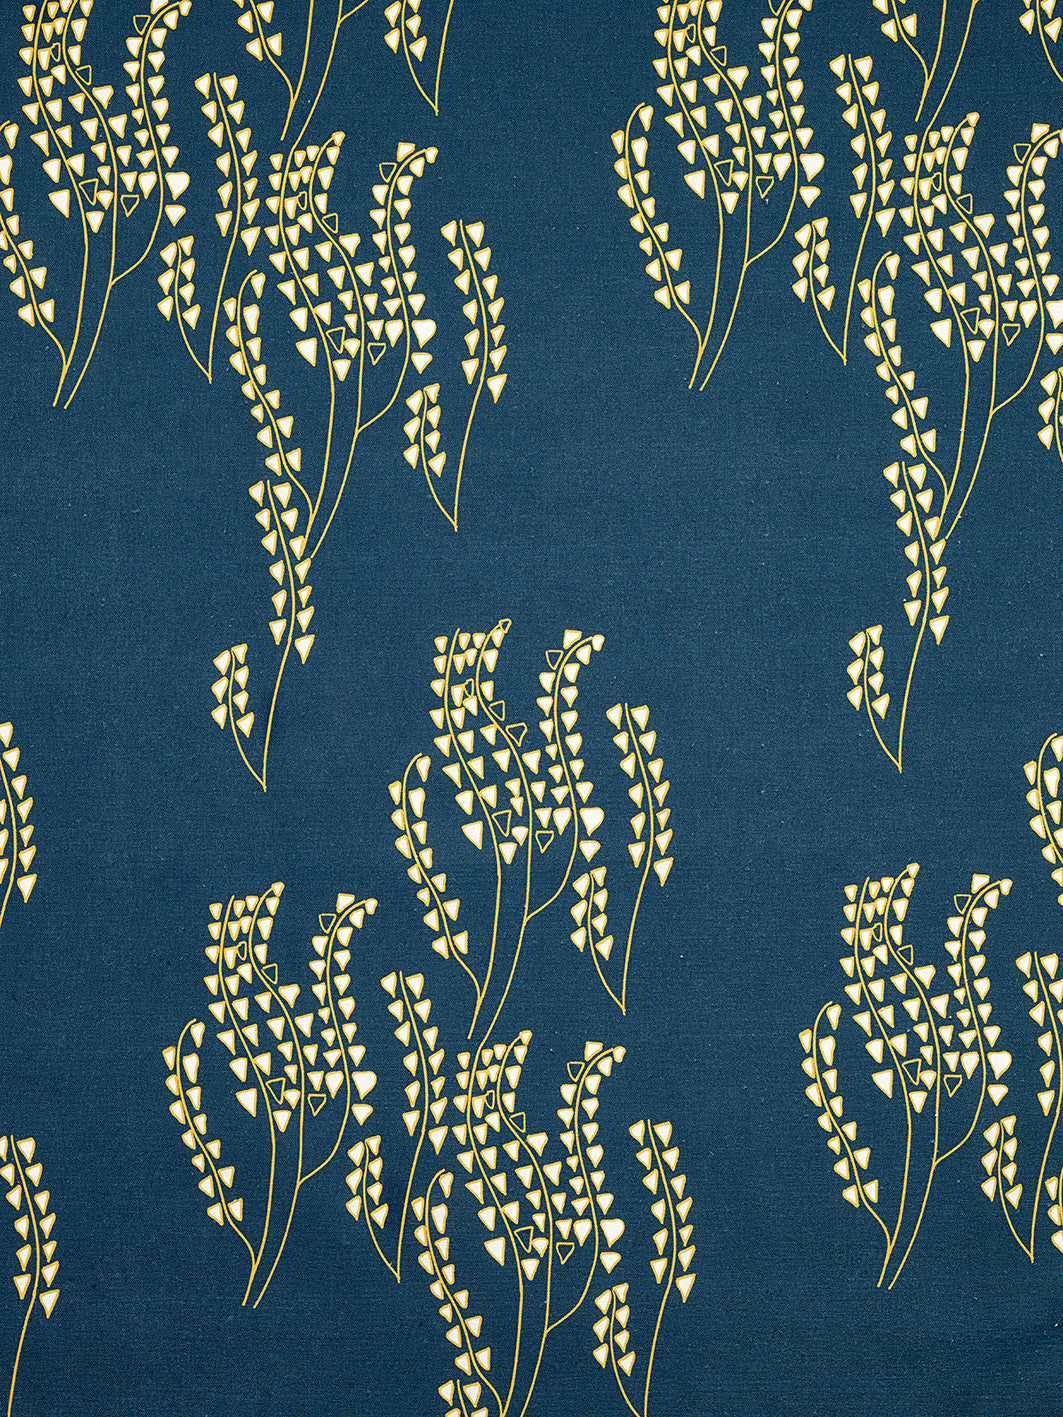 Yuma graphic Wild grass pattern cotton linen Home decor interior Fabric by the yard or meter for curtains, blinds or upholstery - Petrol navy dark blue - maize yellow ships from Canada (USA)